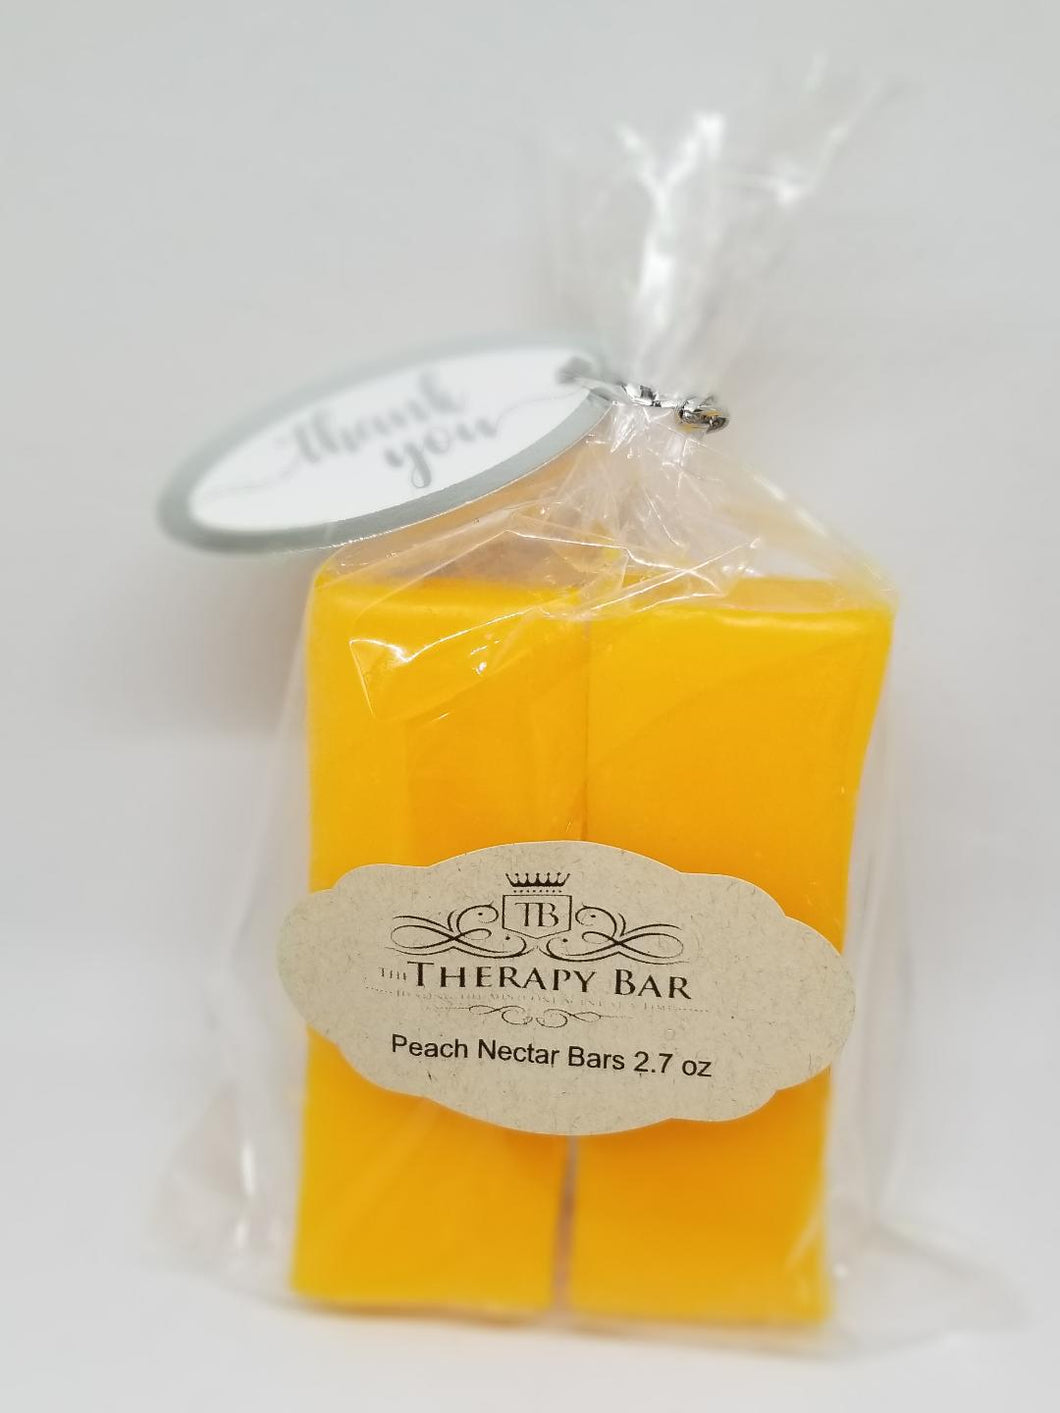 Peach Nectar Bars 2.7 oz